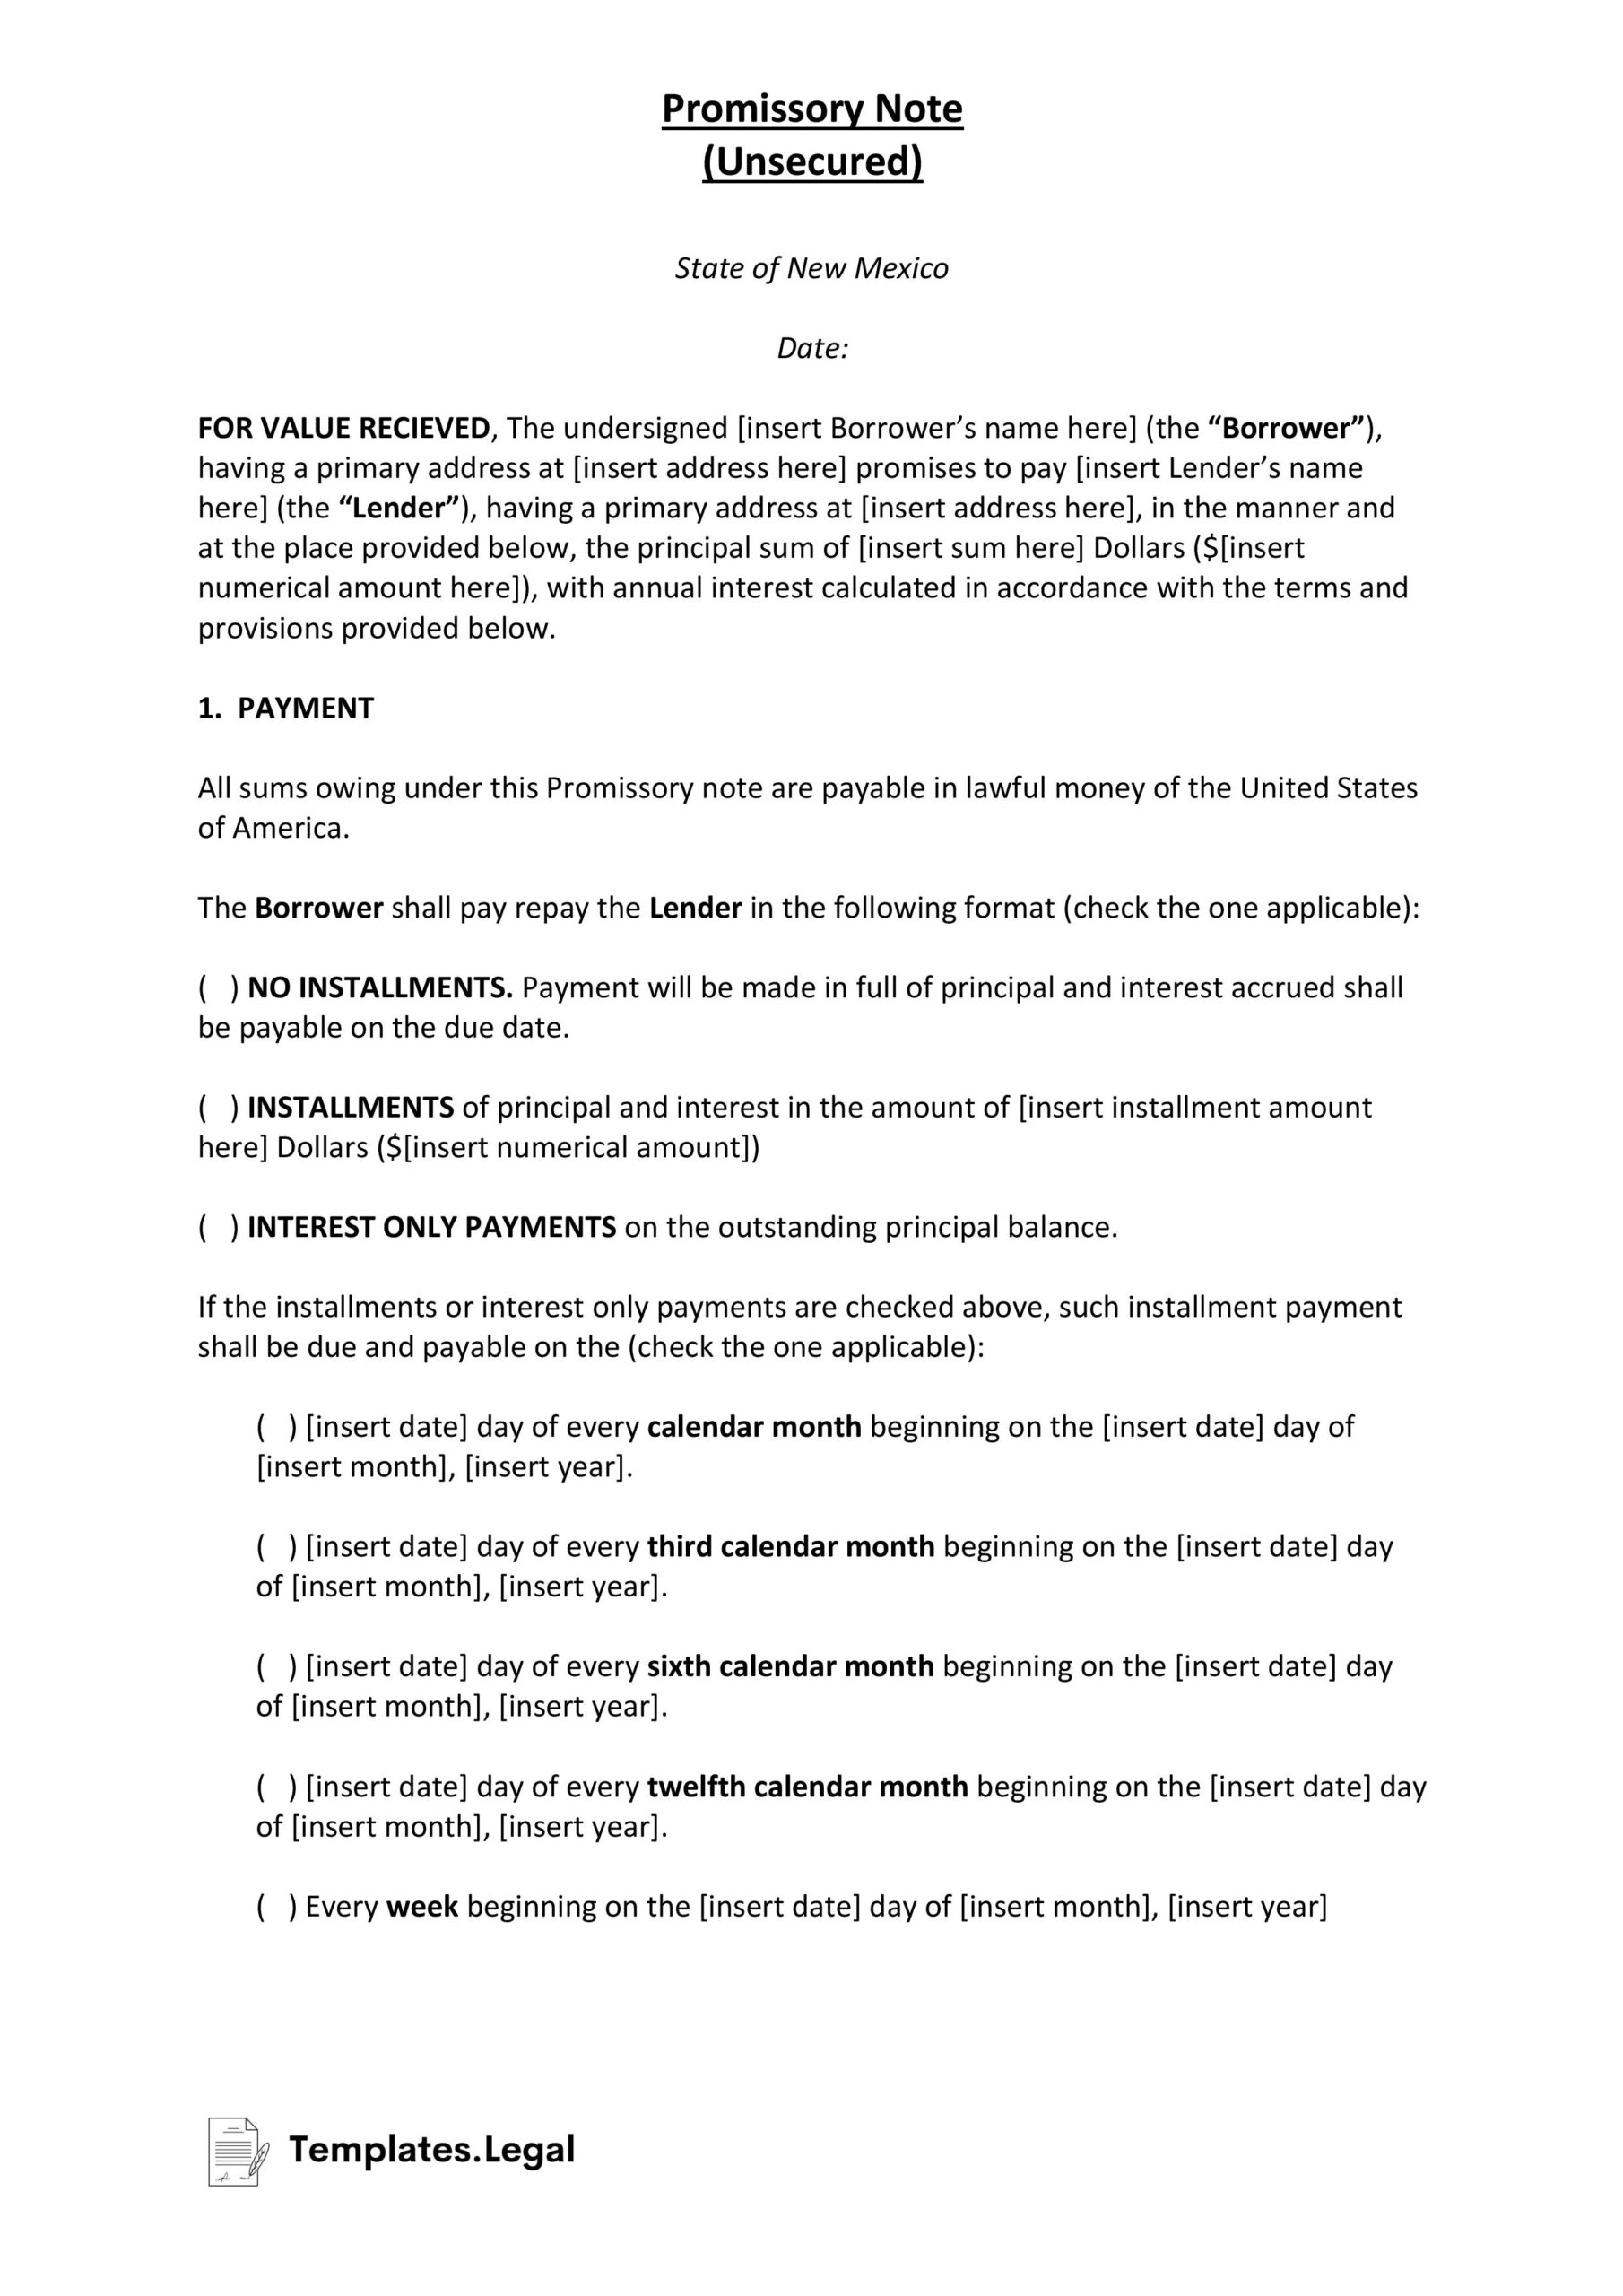 New Mexico Unsecured Promissory Note - Templates.Legal